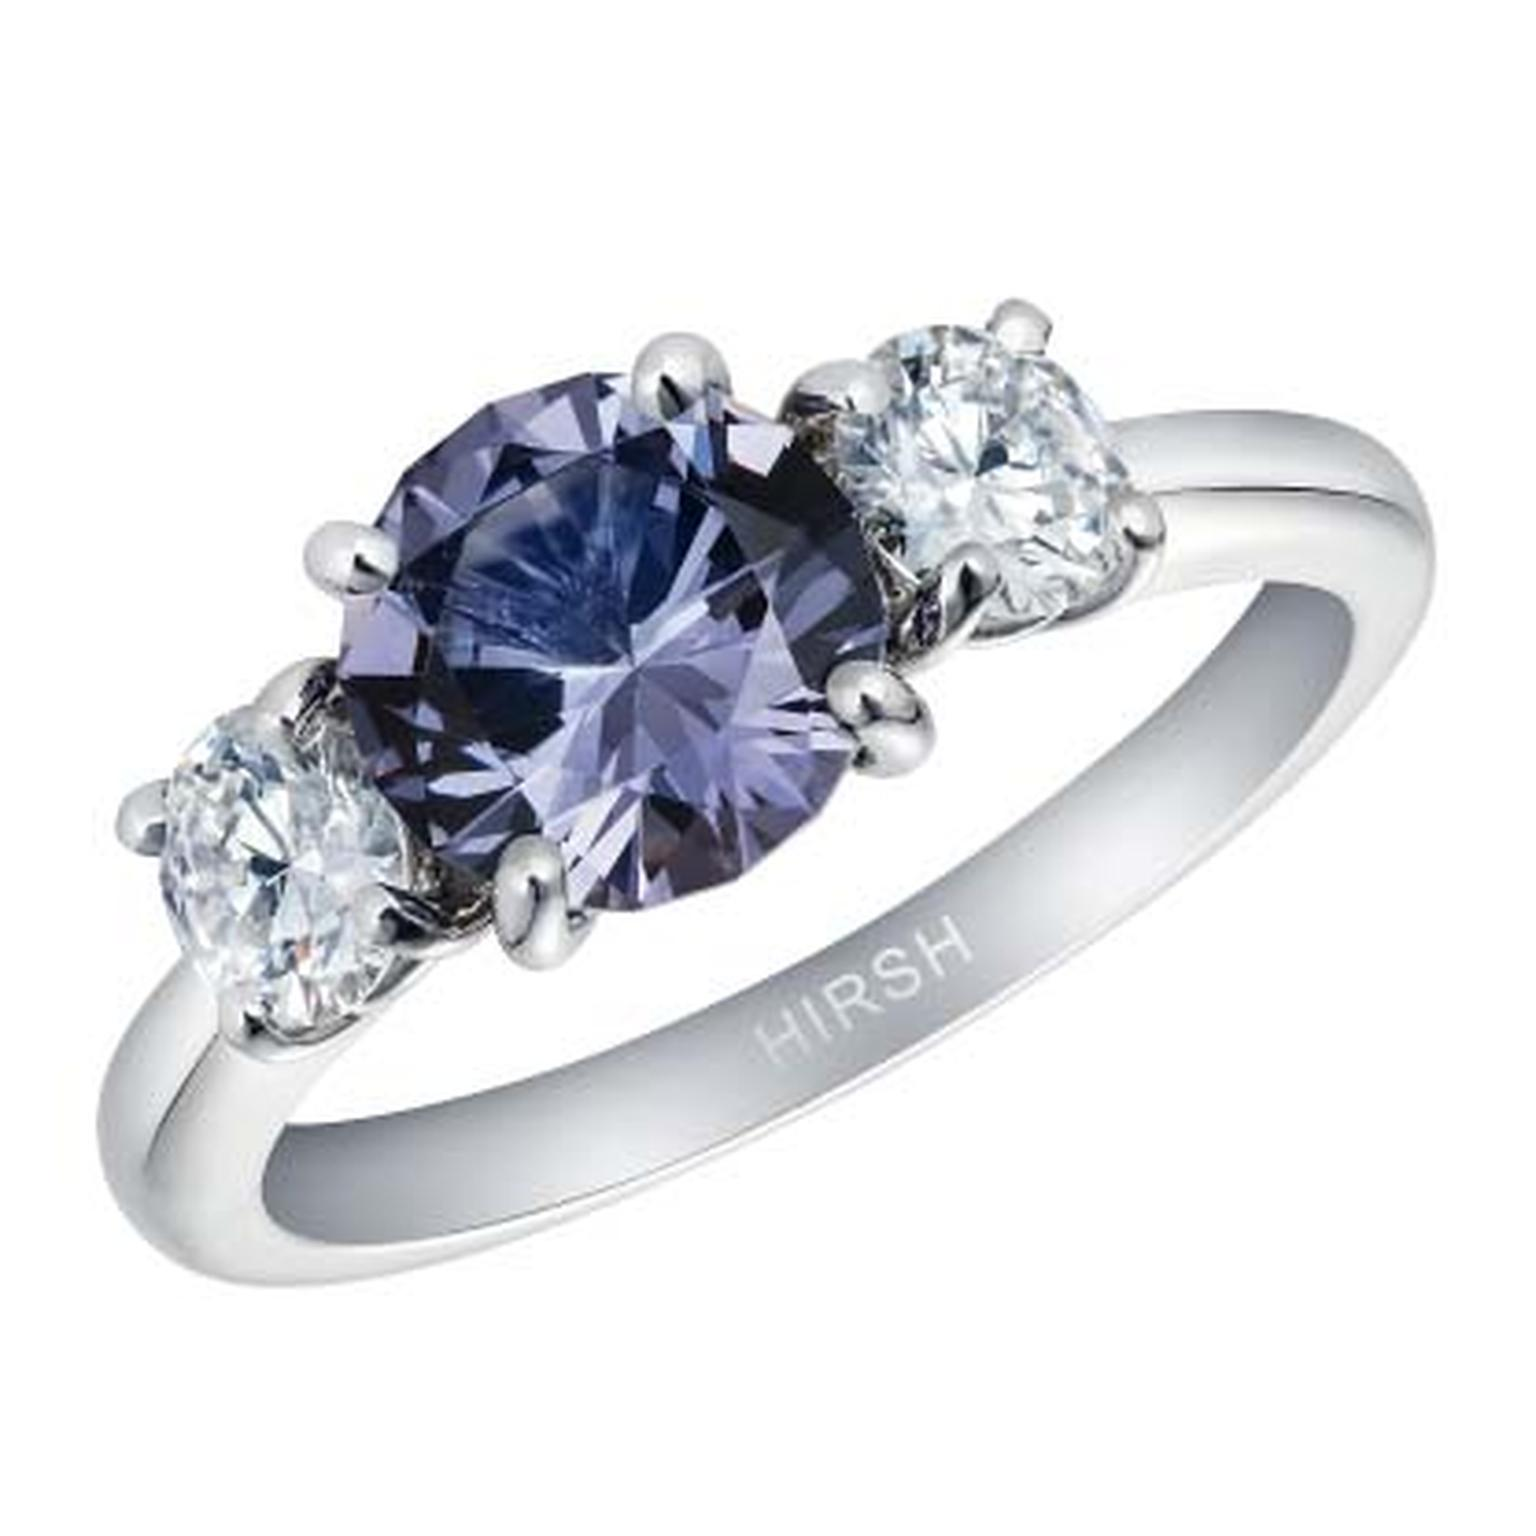 Hirsh London lavender spinel Trilogy engagement ring